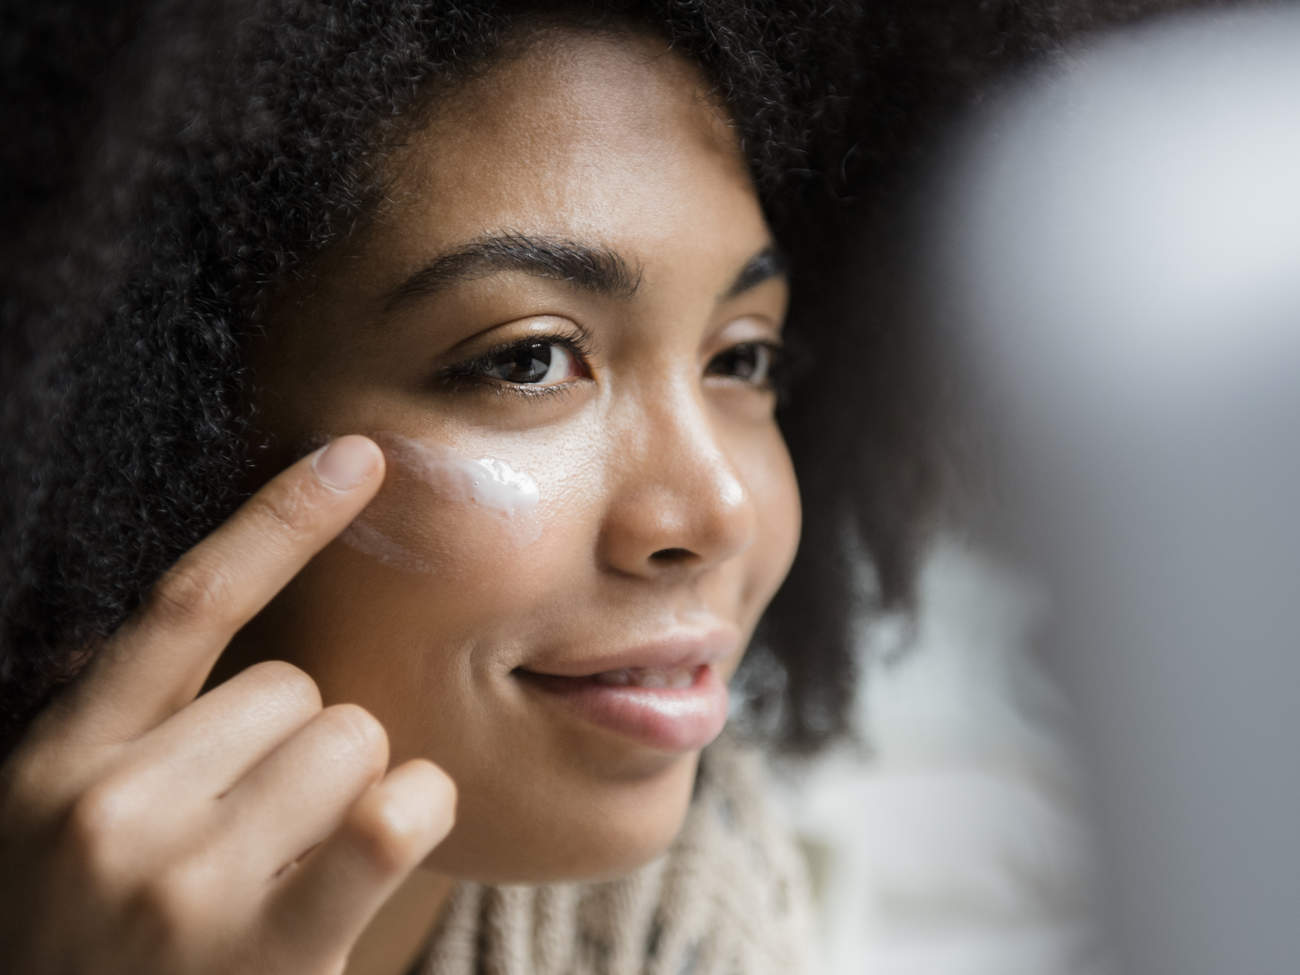 The 7 Best Sunscreens for Oily Skin, According to Dermatologists